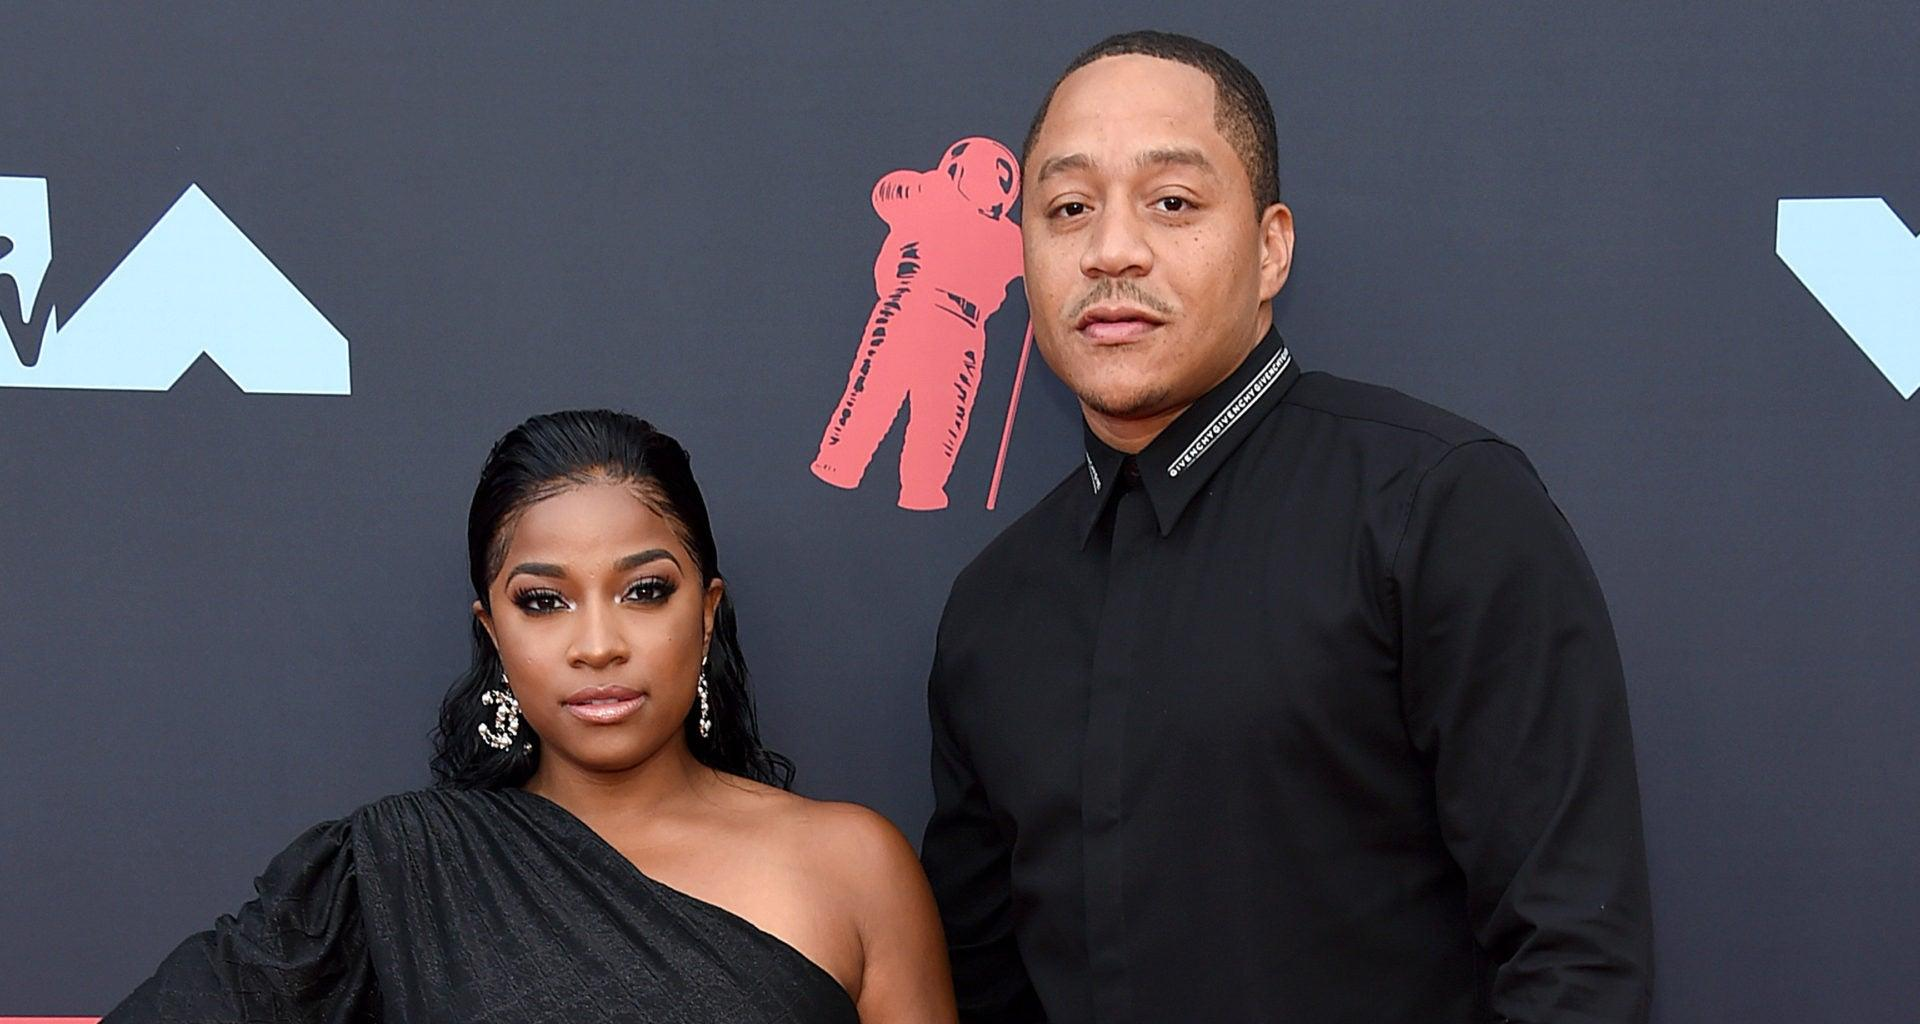 Toya Johnson Gets Her Body In The Perfect Shape For The Wedding To Robert Rushing - Fans Are Debating The Man She Chose To Marry